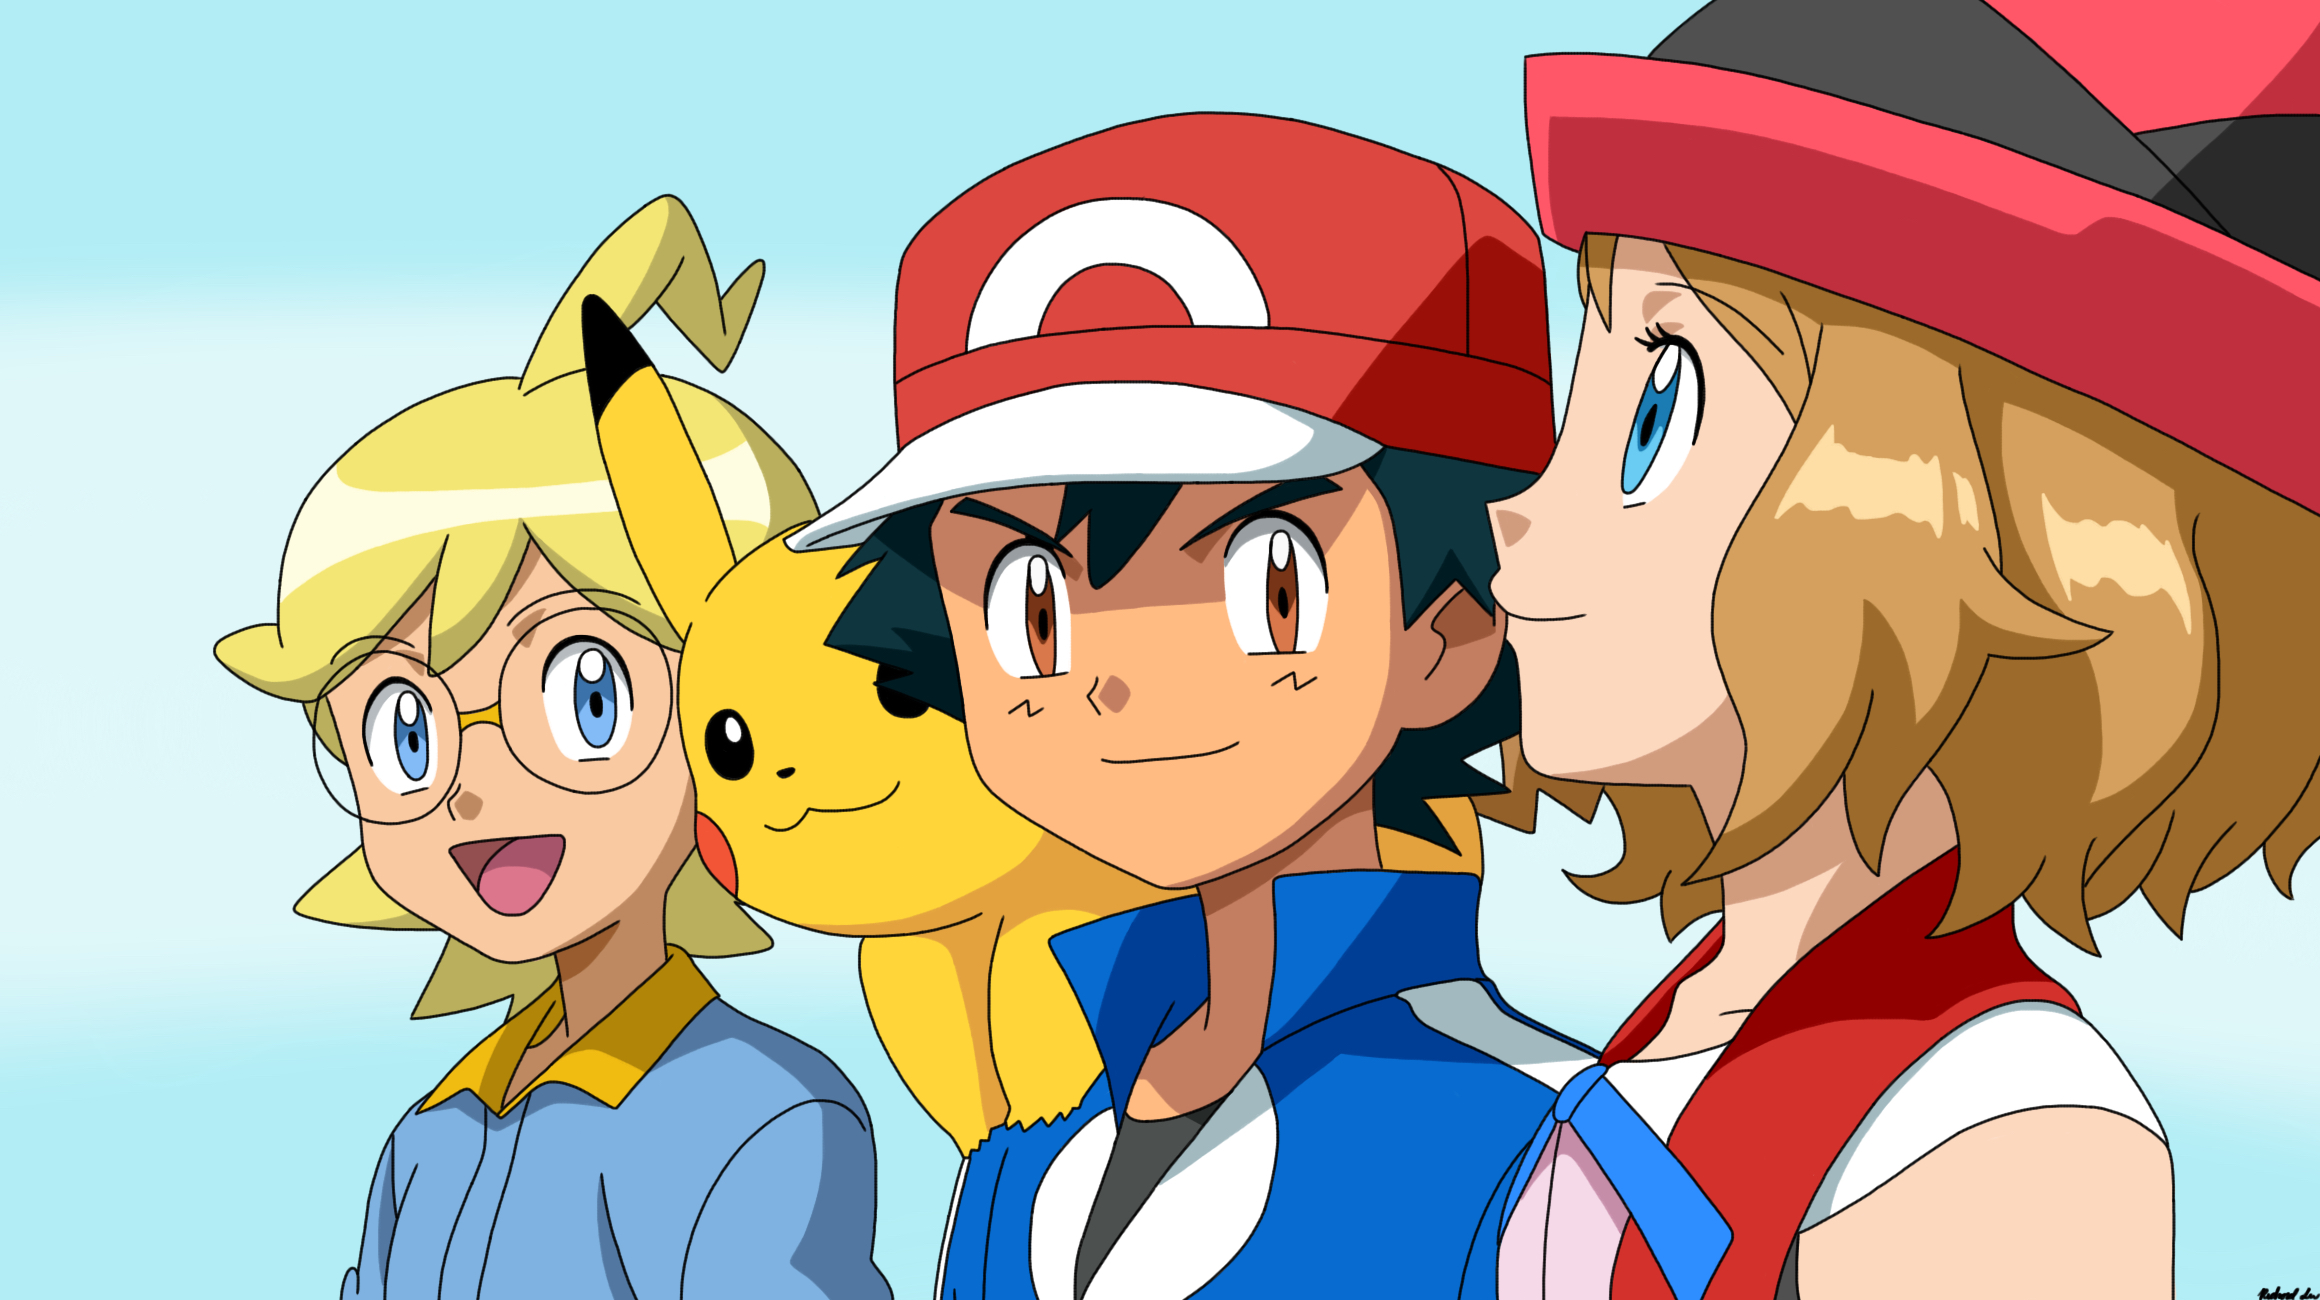 pokemon serena and ash